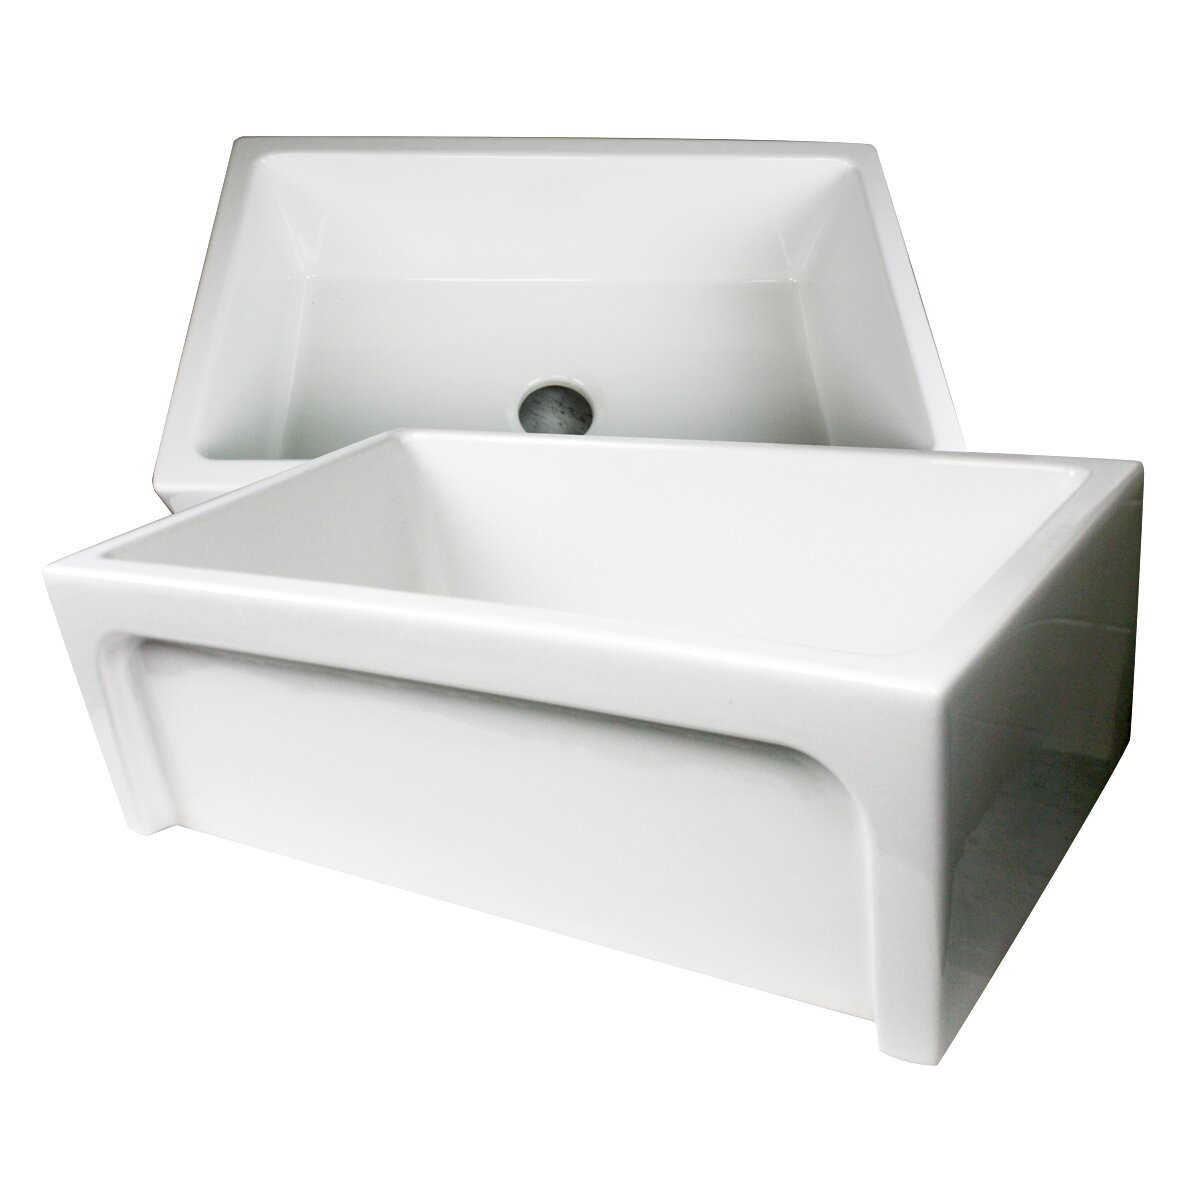 nantucket sinks 30 quot x 18 quot chatham single bowl kitchen sink